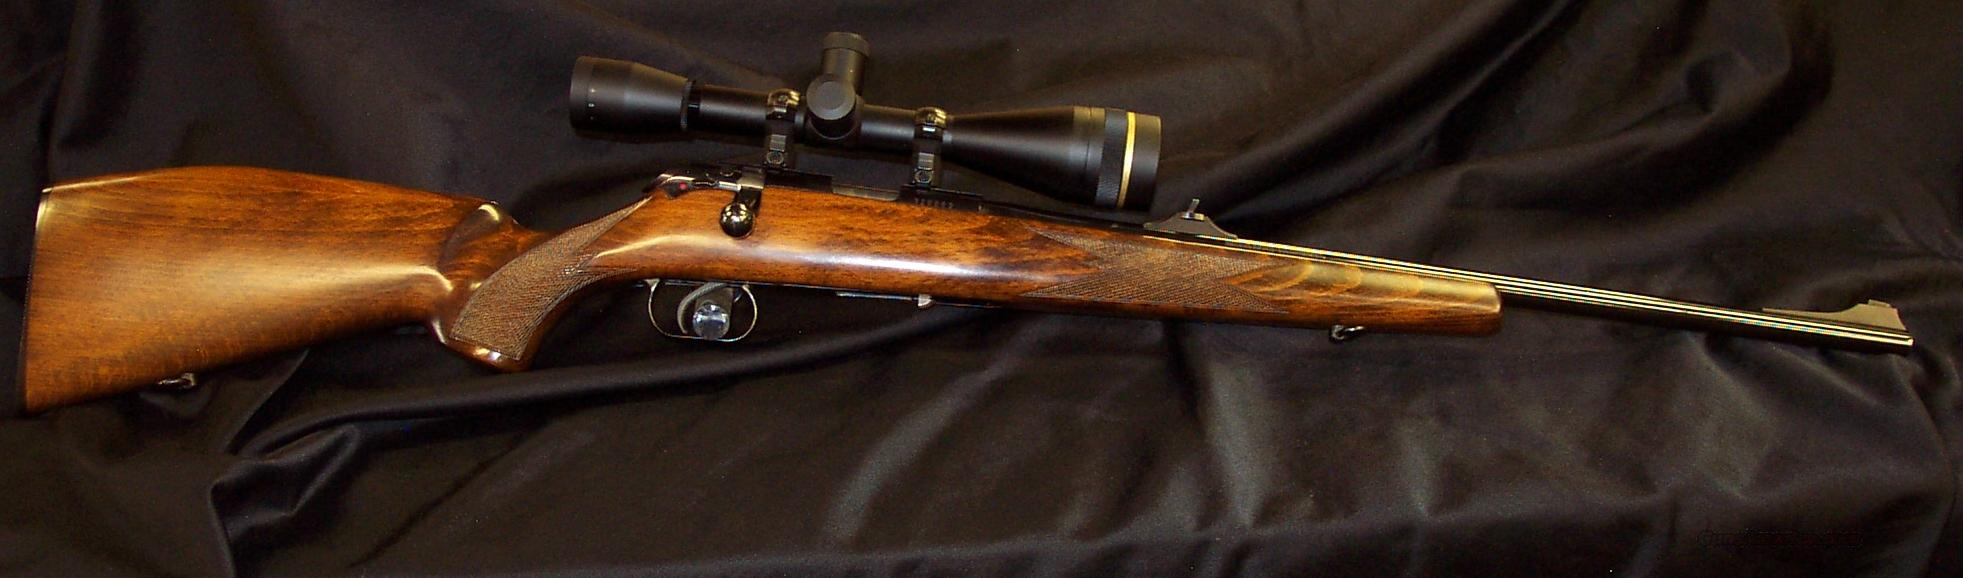 Mauser  Model 201  Guns > Rifles > Mauser Rifles > German